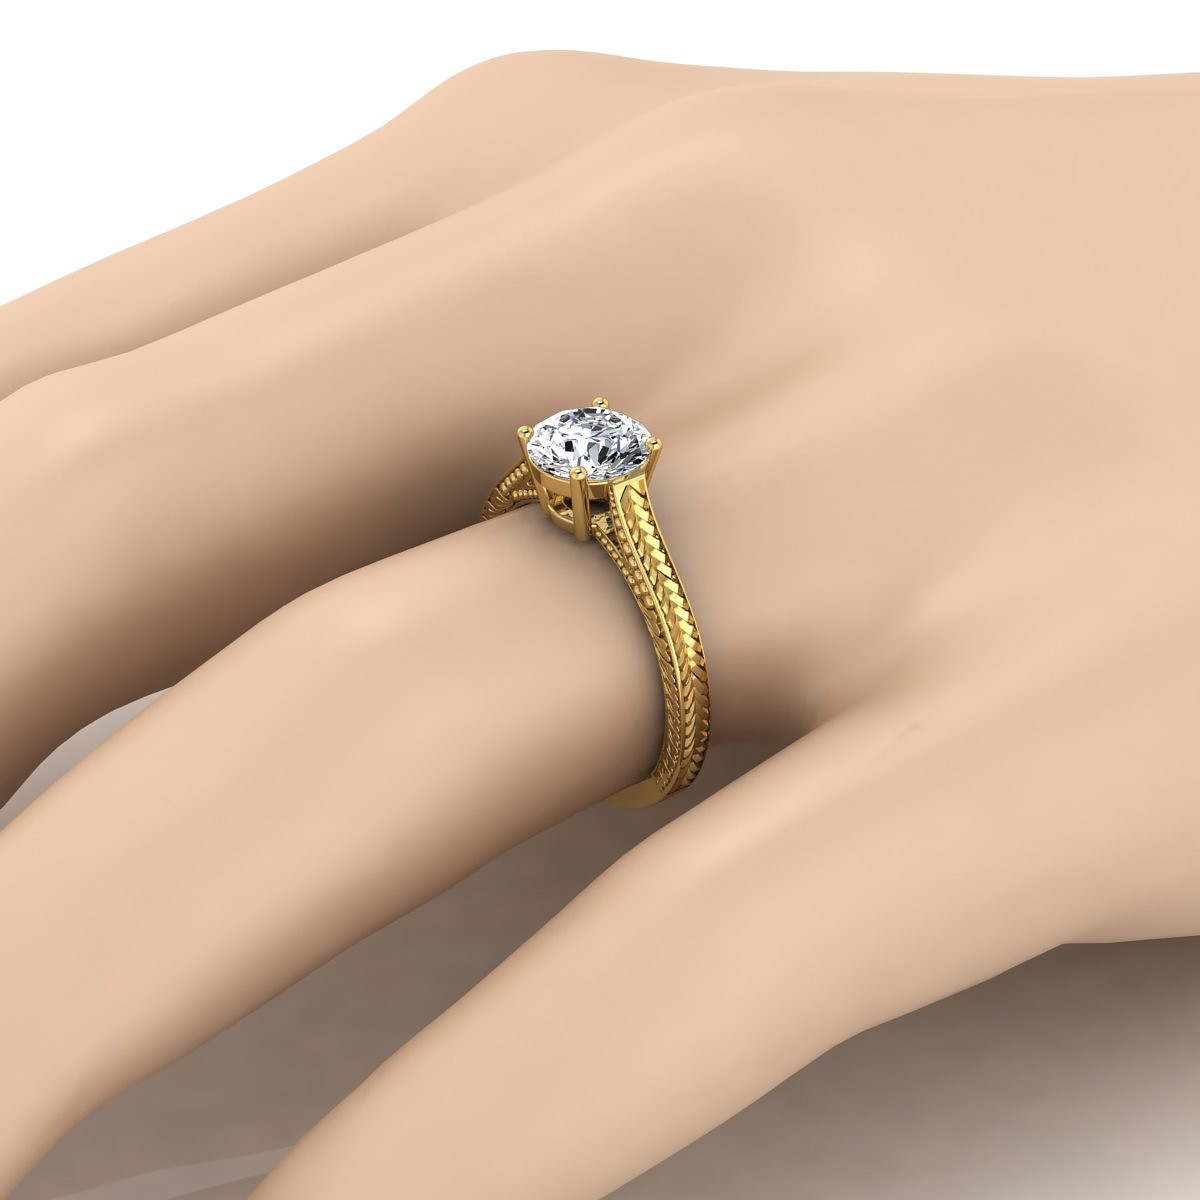 Antique Inspired Engraved Diamond Engagement Ring With Millgrain Finish In 14k Yellow Gold